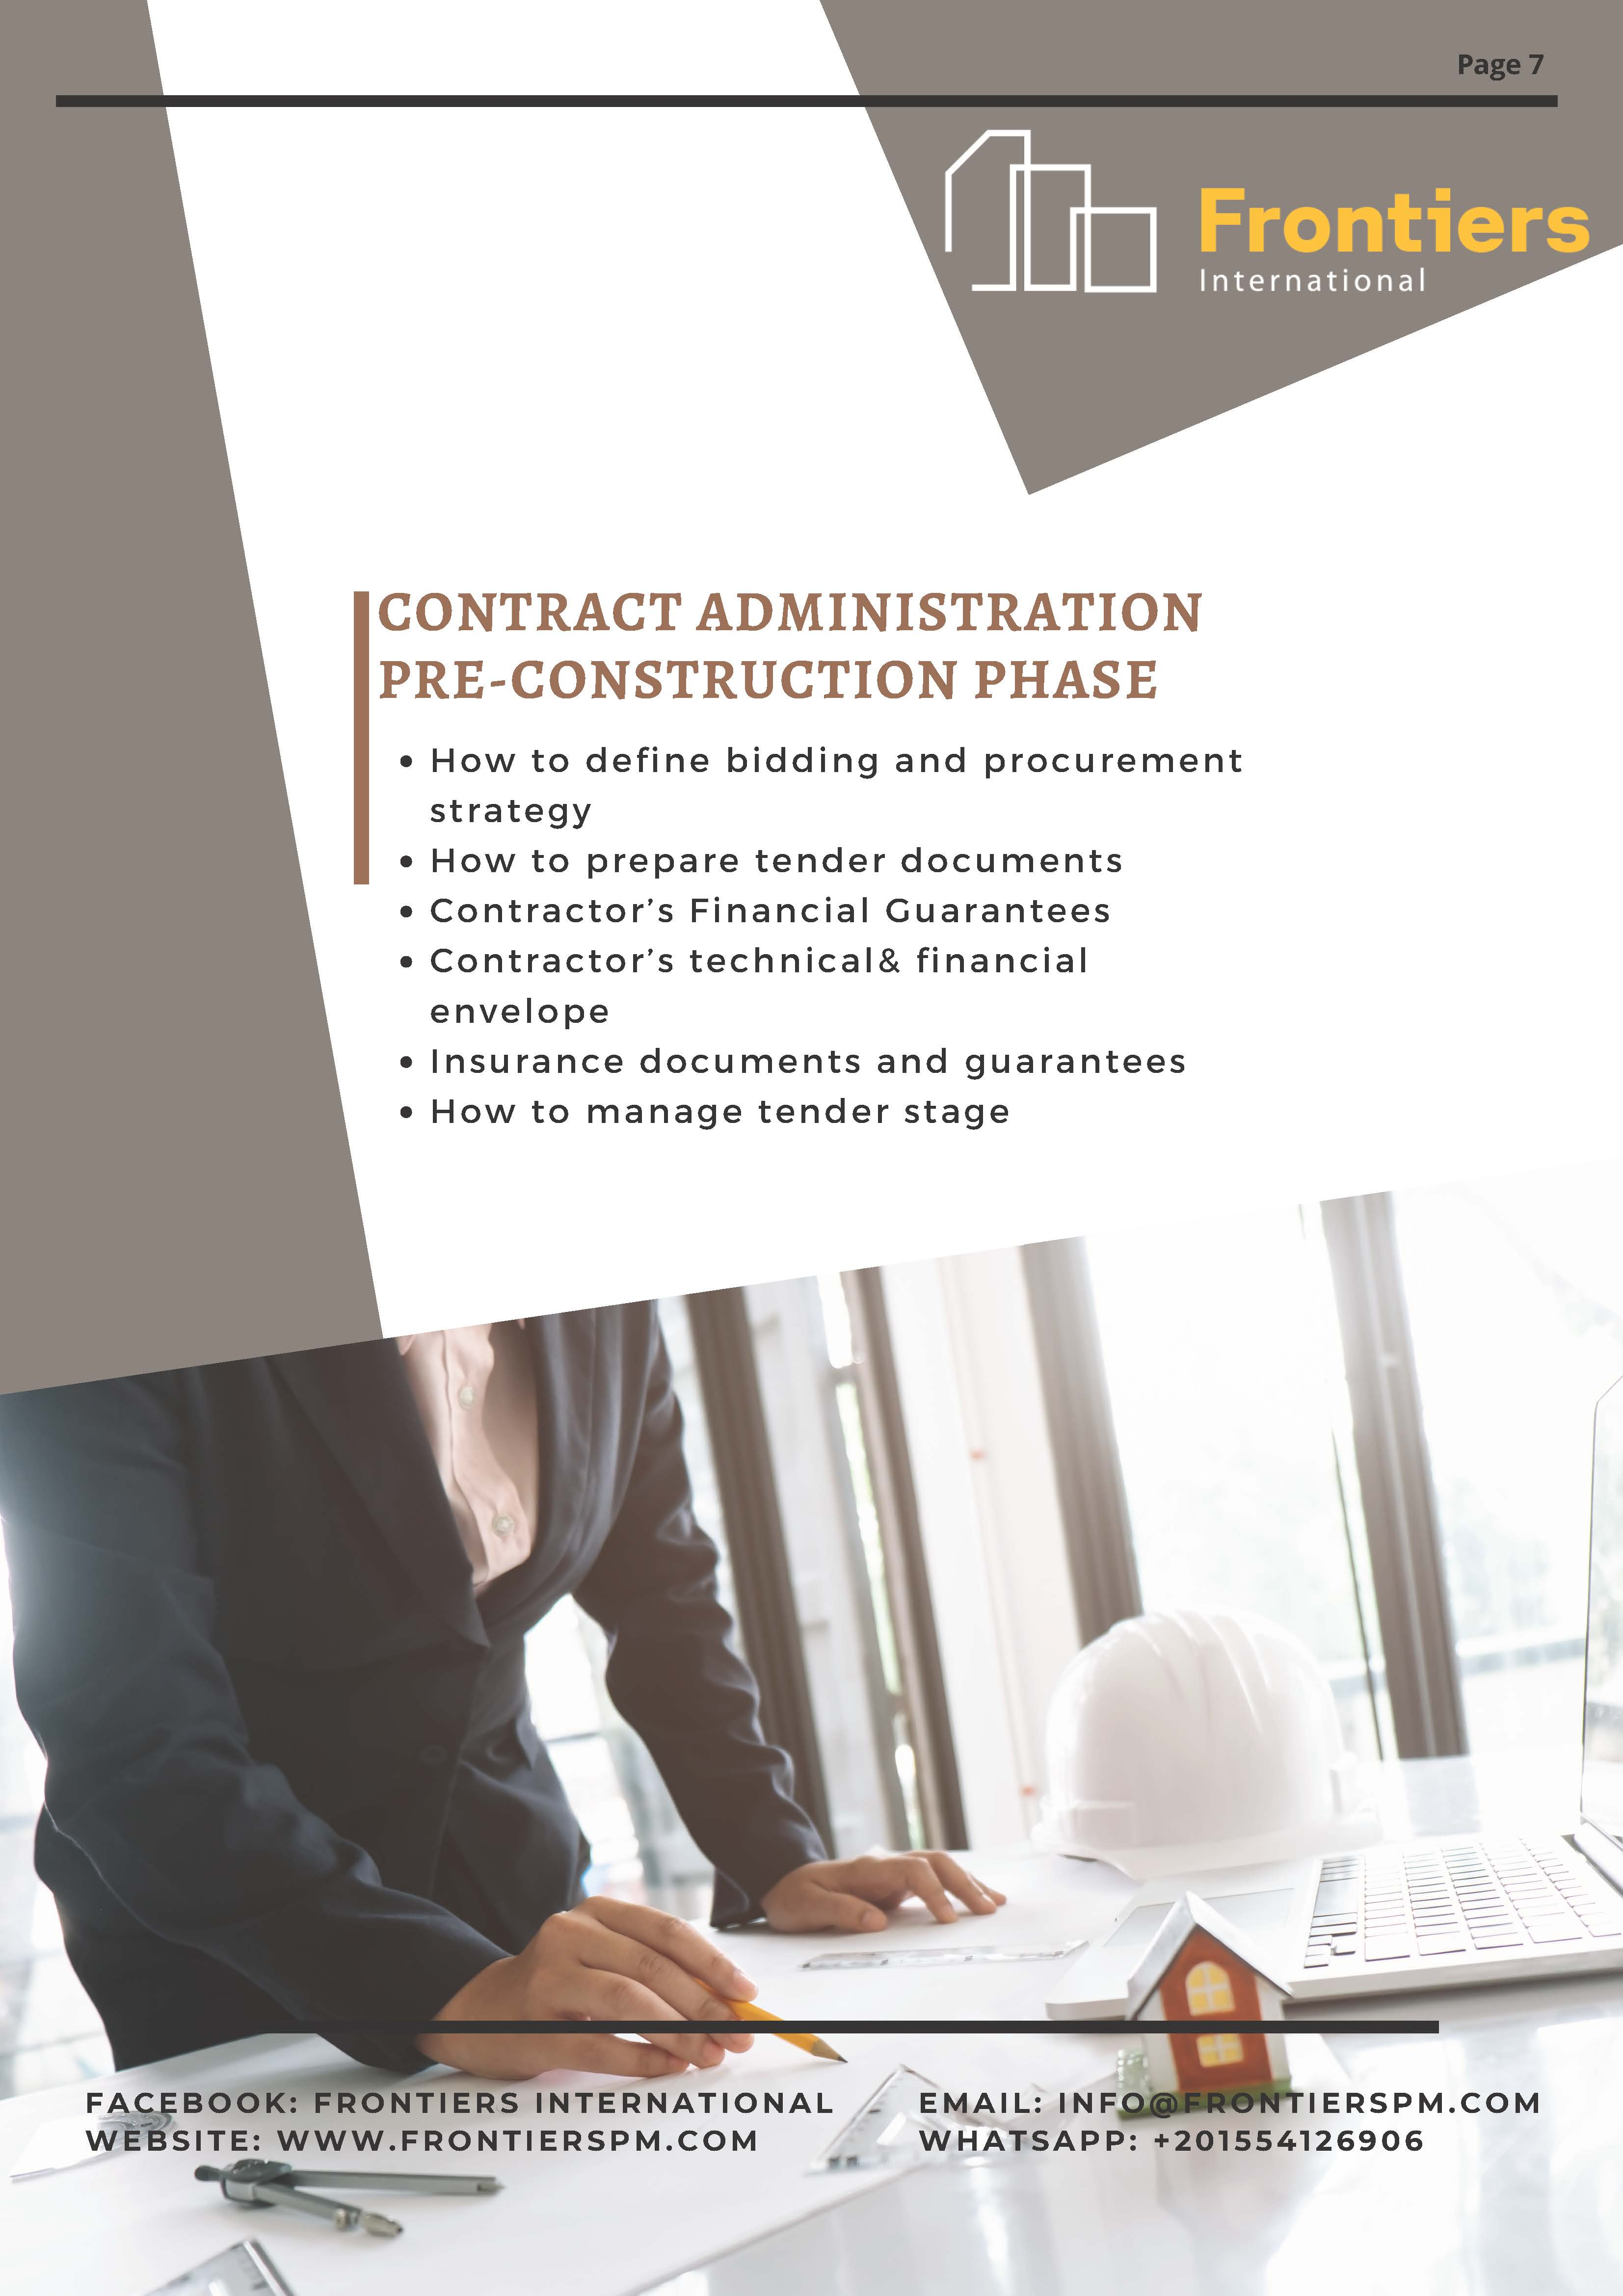 Contract Administration Pre-Construction Phase